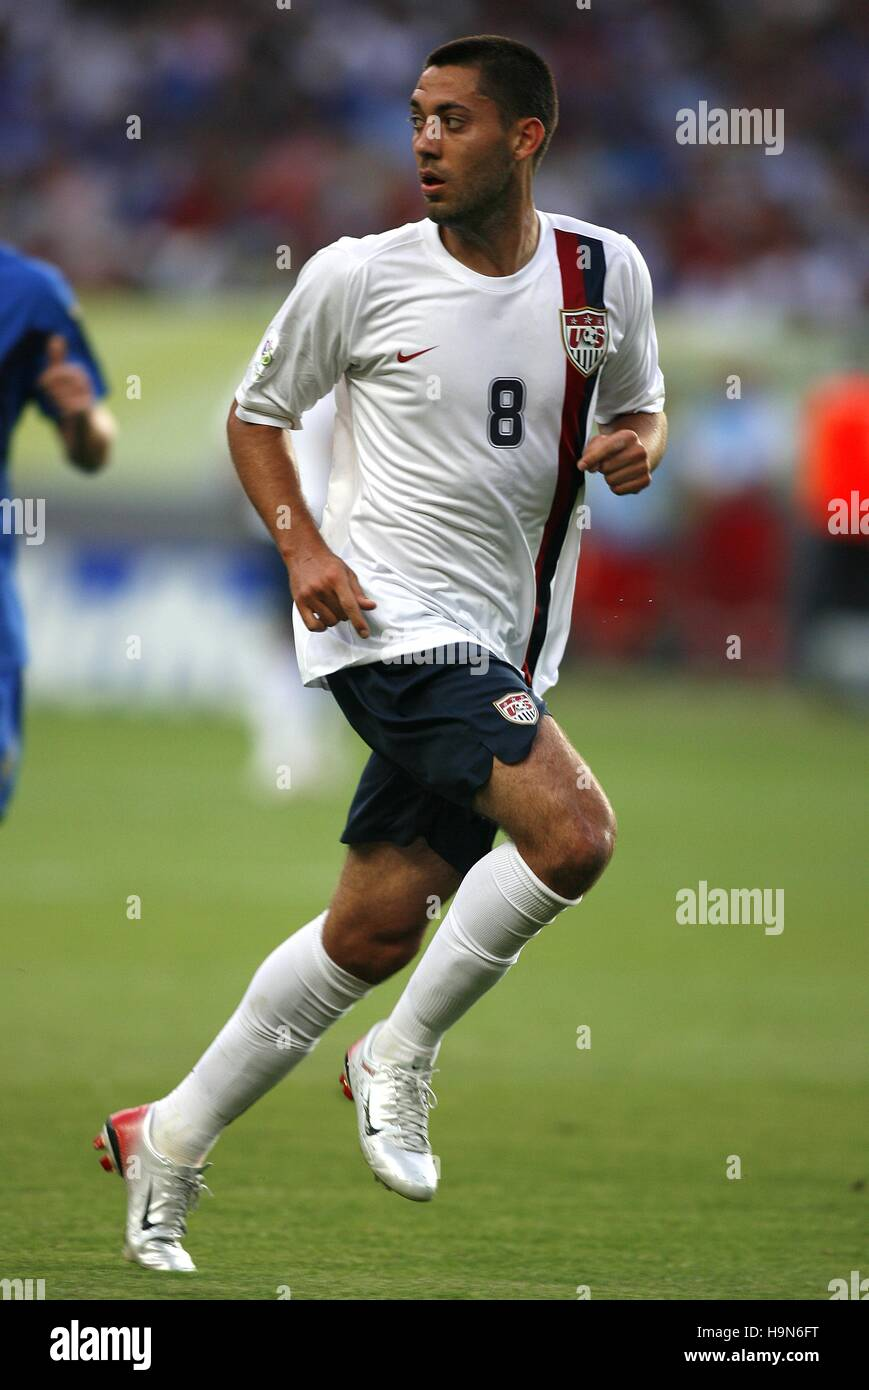 7a2da1eb0b0 CLINT DEMPSEY US   NEW ENGLAND REVOLUTION WORLD CUP KAISERSLAUTERN GERMANY  17 June 2006 - Stock